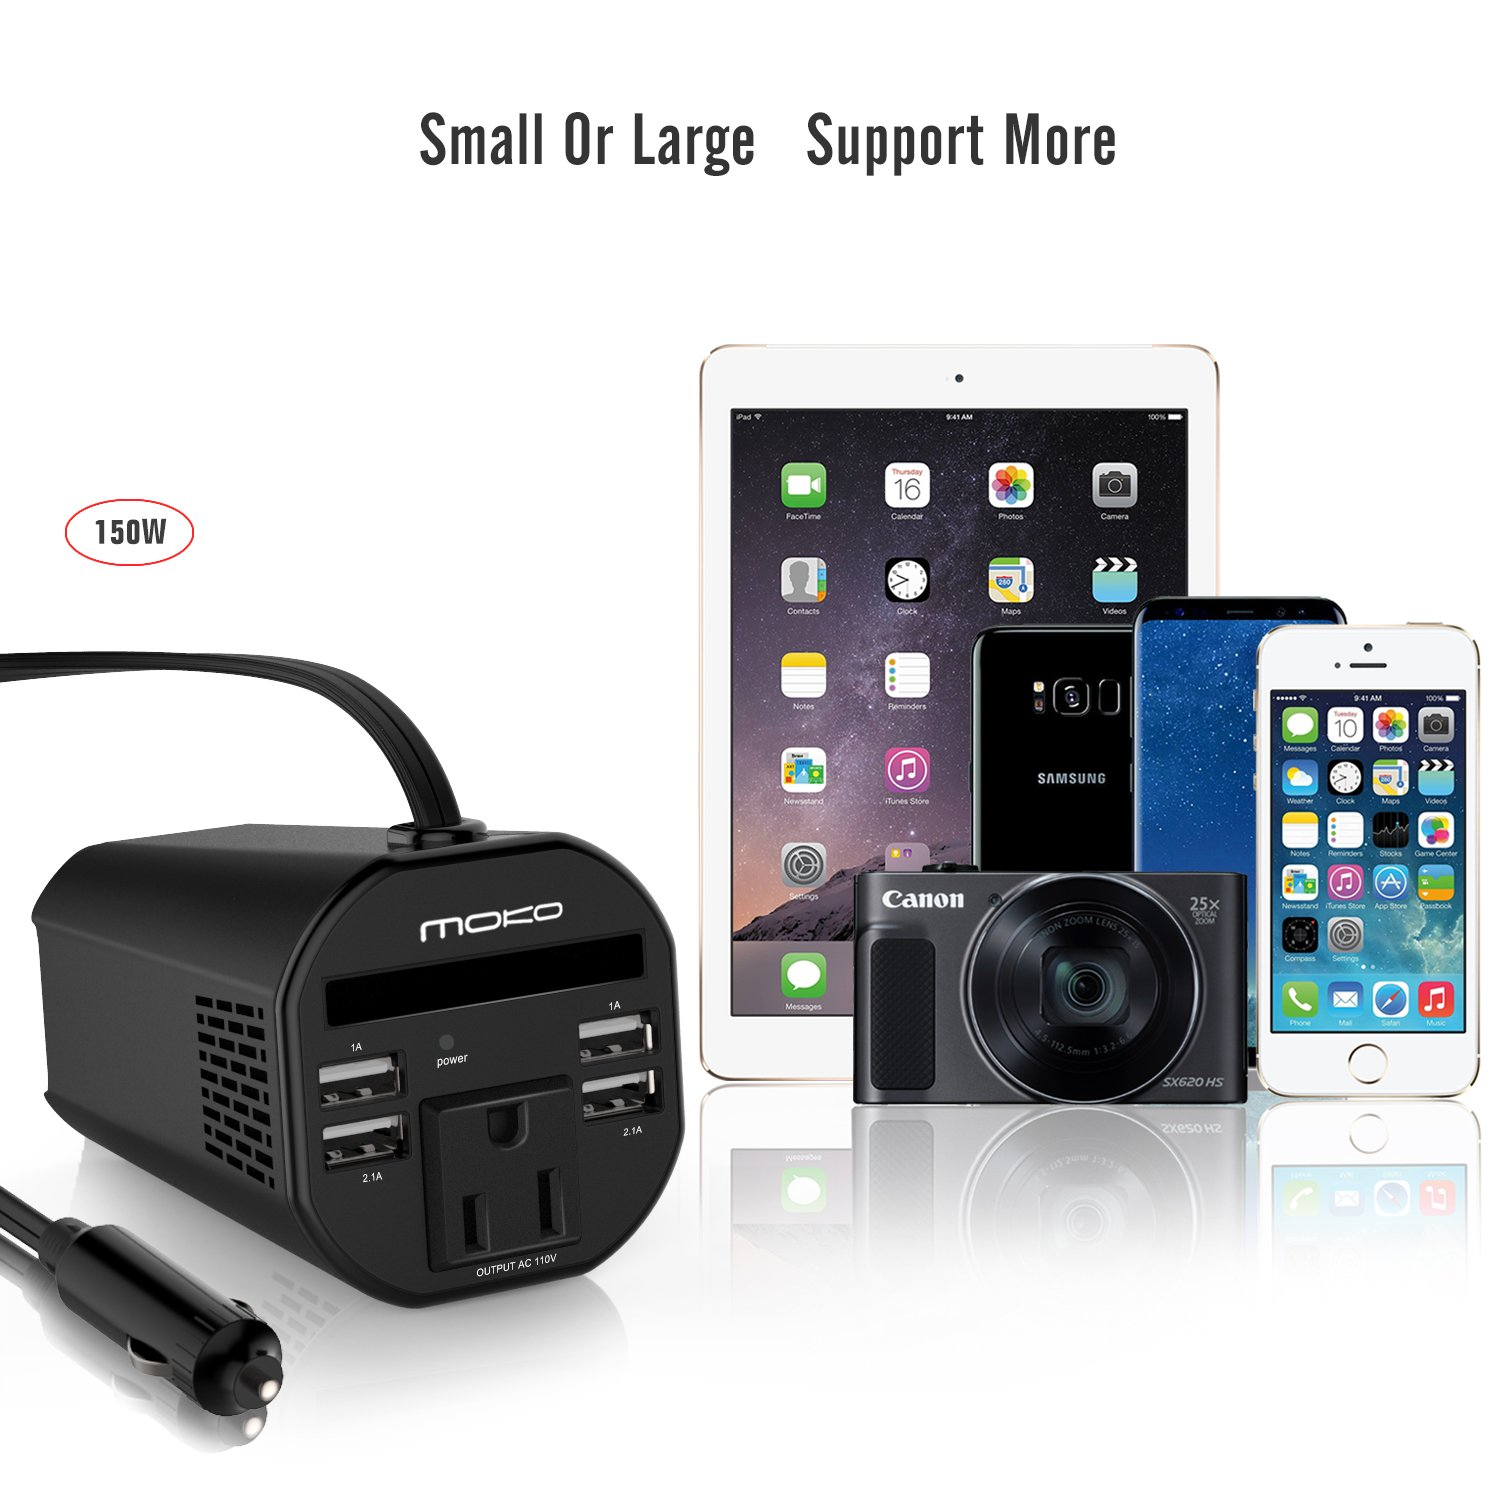 MoKo 150W Car Power Inverter, DC 12V to 110V AC Outlet Cup Holder Converter Adapter, with 4 USB Port Charger, for iPhone X/8/8 Plus, MacBook, iPad Pro, Chromebook, Galaxy S8 and etc. (Black) by MoKo (Image #2)